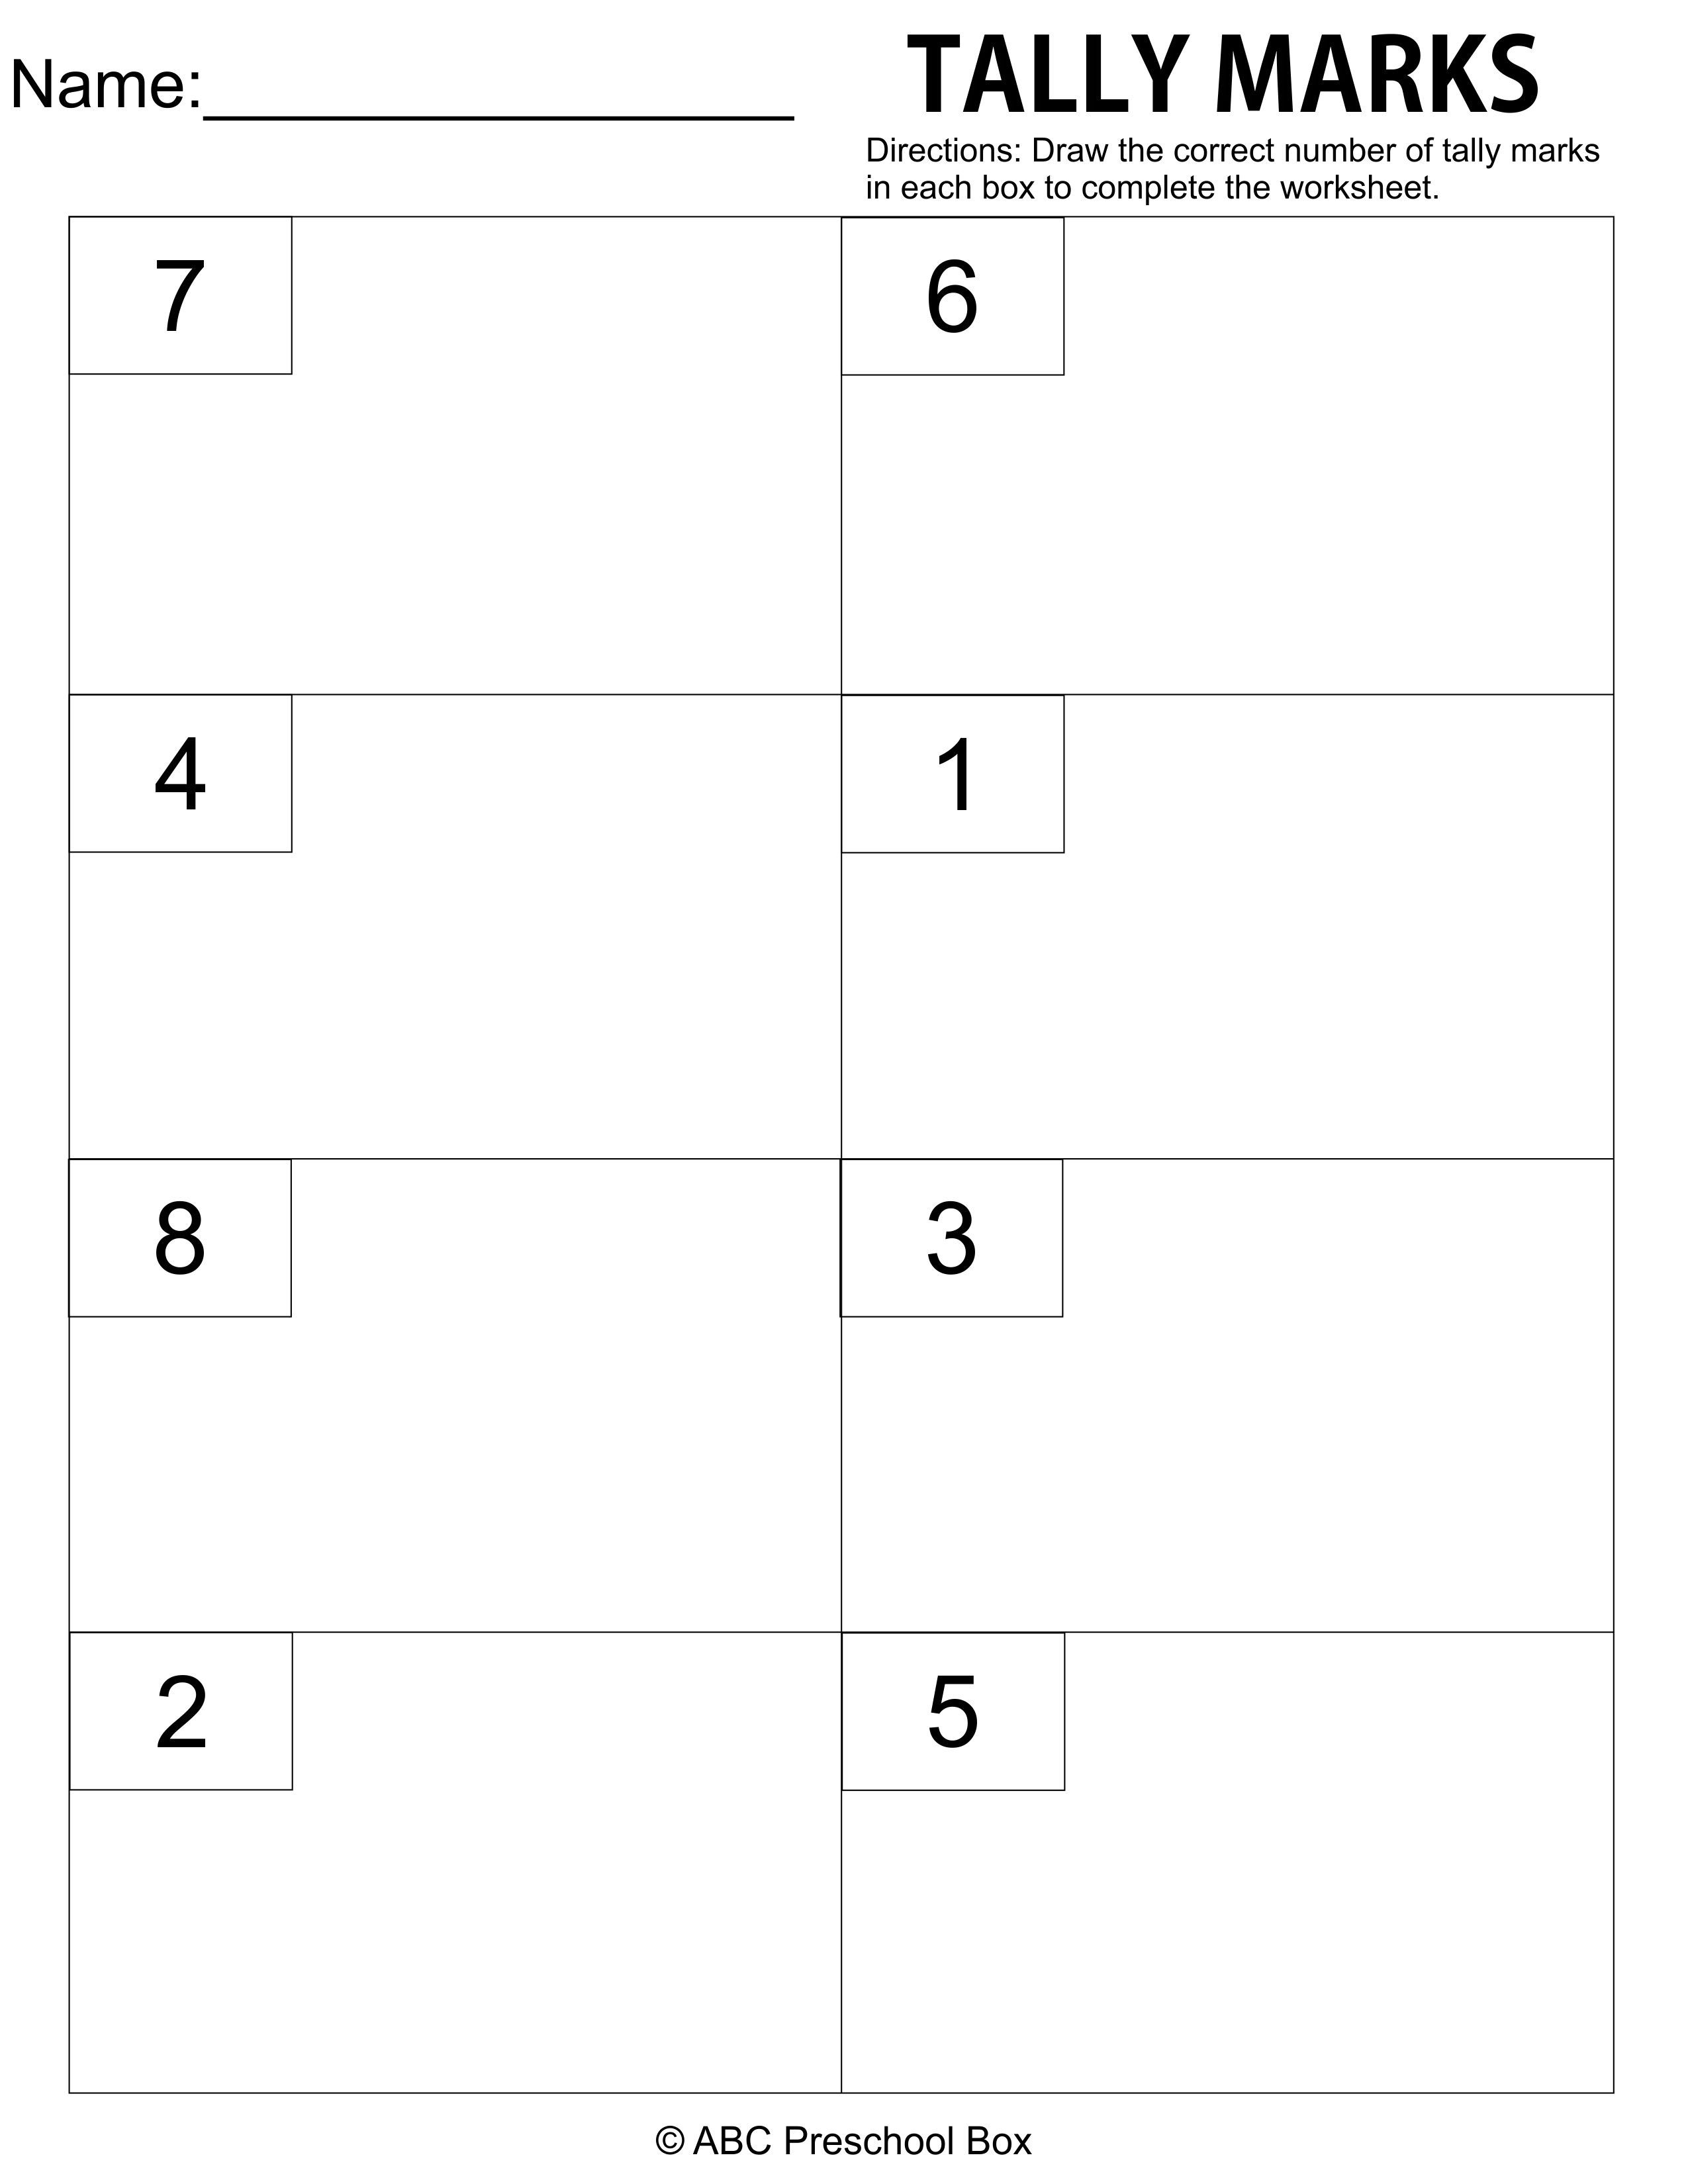 Tally marks preschool worksheet from abcpreschoolbox.com   Letter  recognition worksheets [ 3300 x 2550 Pixel ]